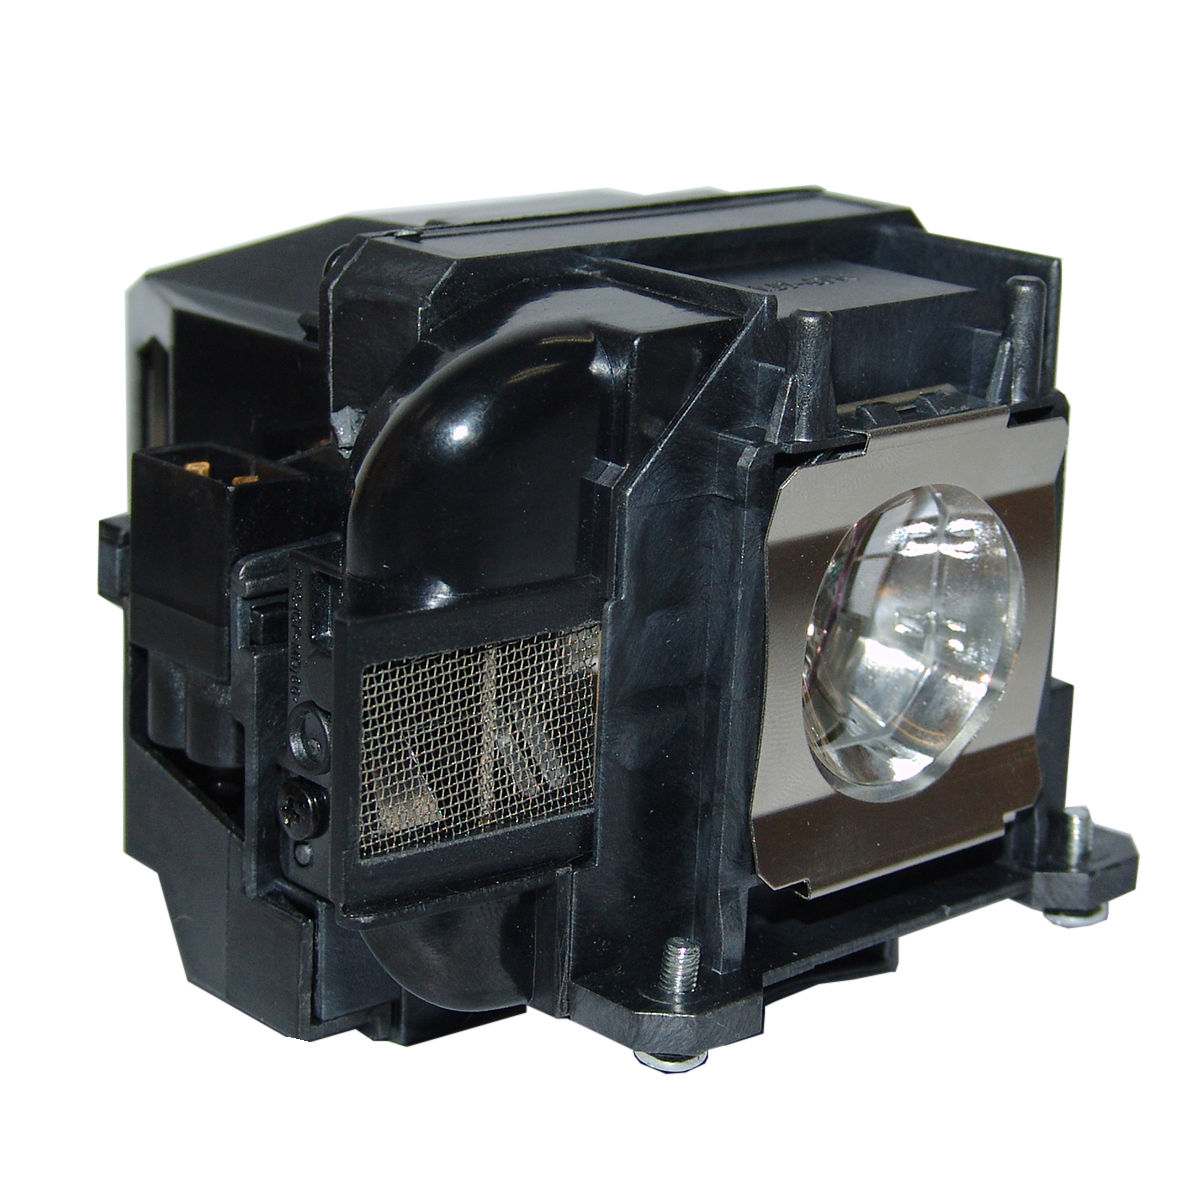 Projector Lamp Bulb ELPLP88 V13H010L88 for Epson EB-S31 PowerLite S27 X27 W29 97H 98H 99WH 955WH 965H VS345 VS240 With Housing ботинки elong elong el025amgka64